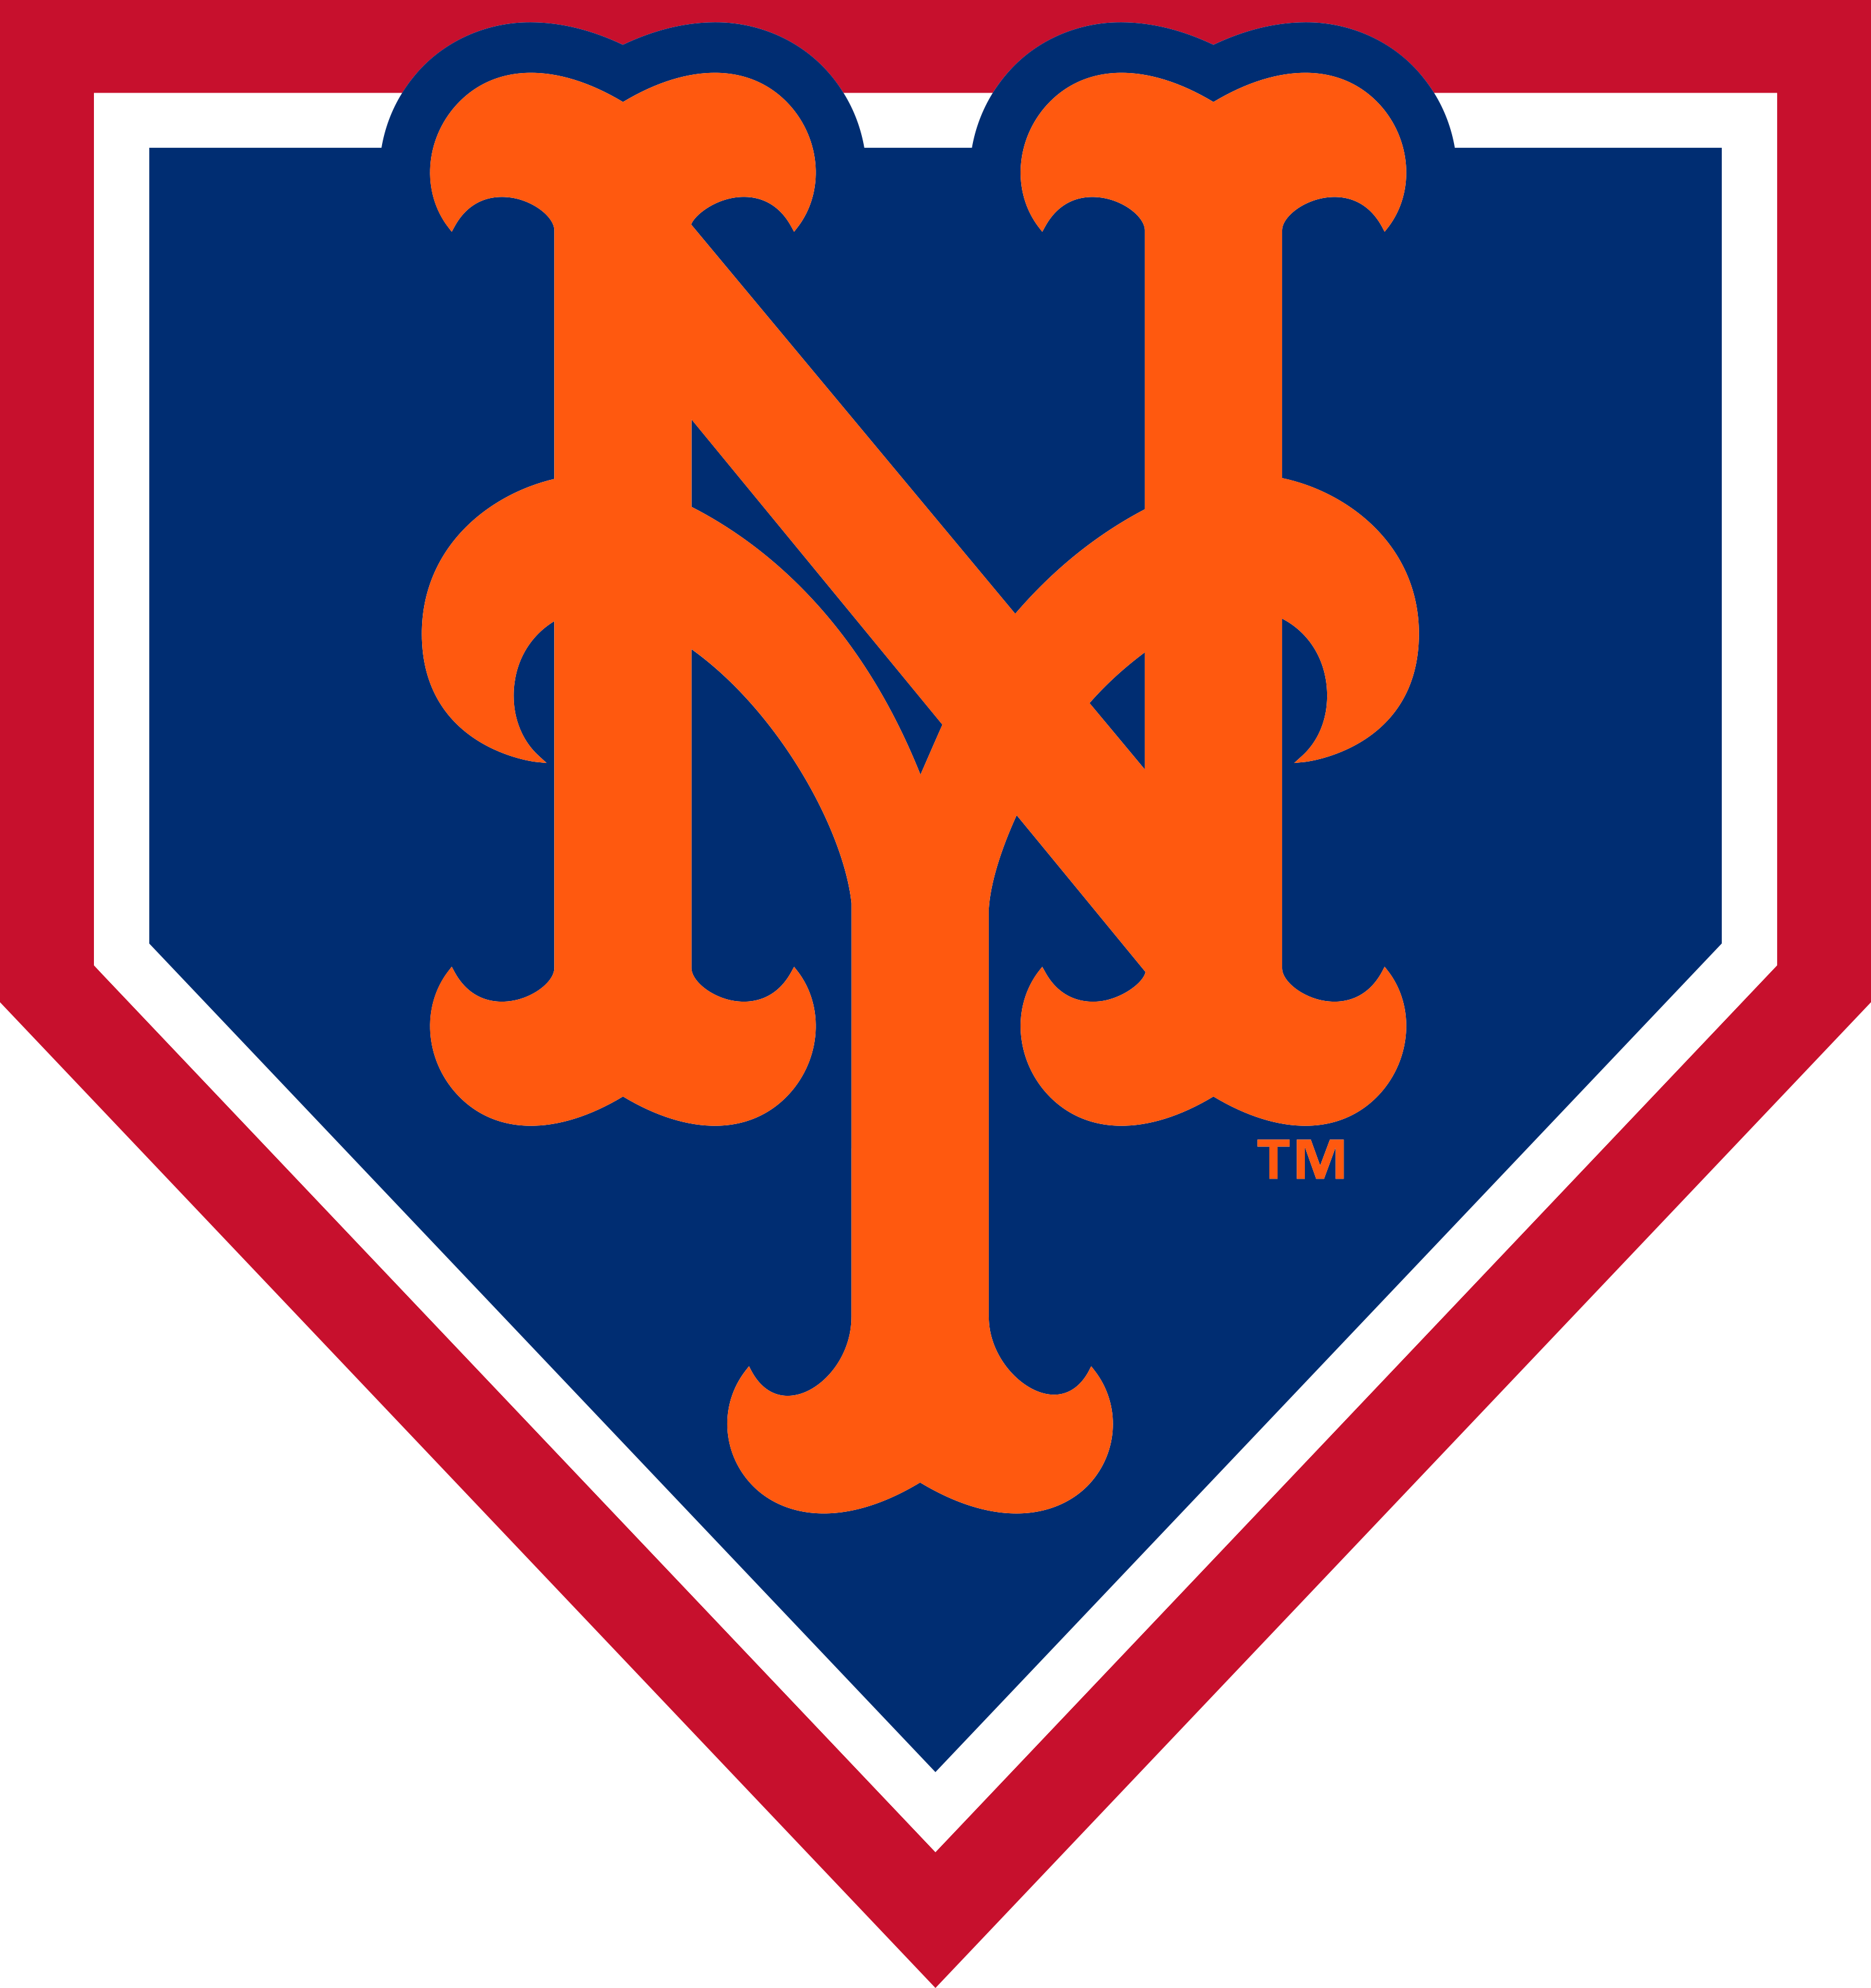 Mets baseball logo clipart clip transparent stock The Mets are close to celebrating their best moment in nine years ... clip transparent stock